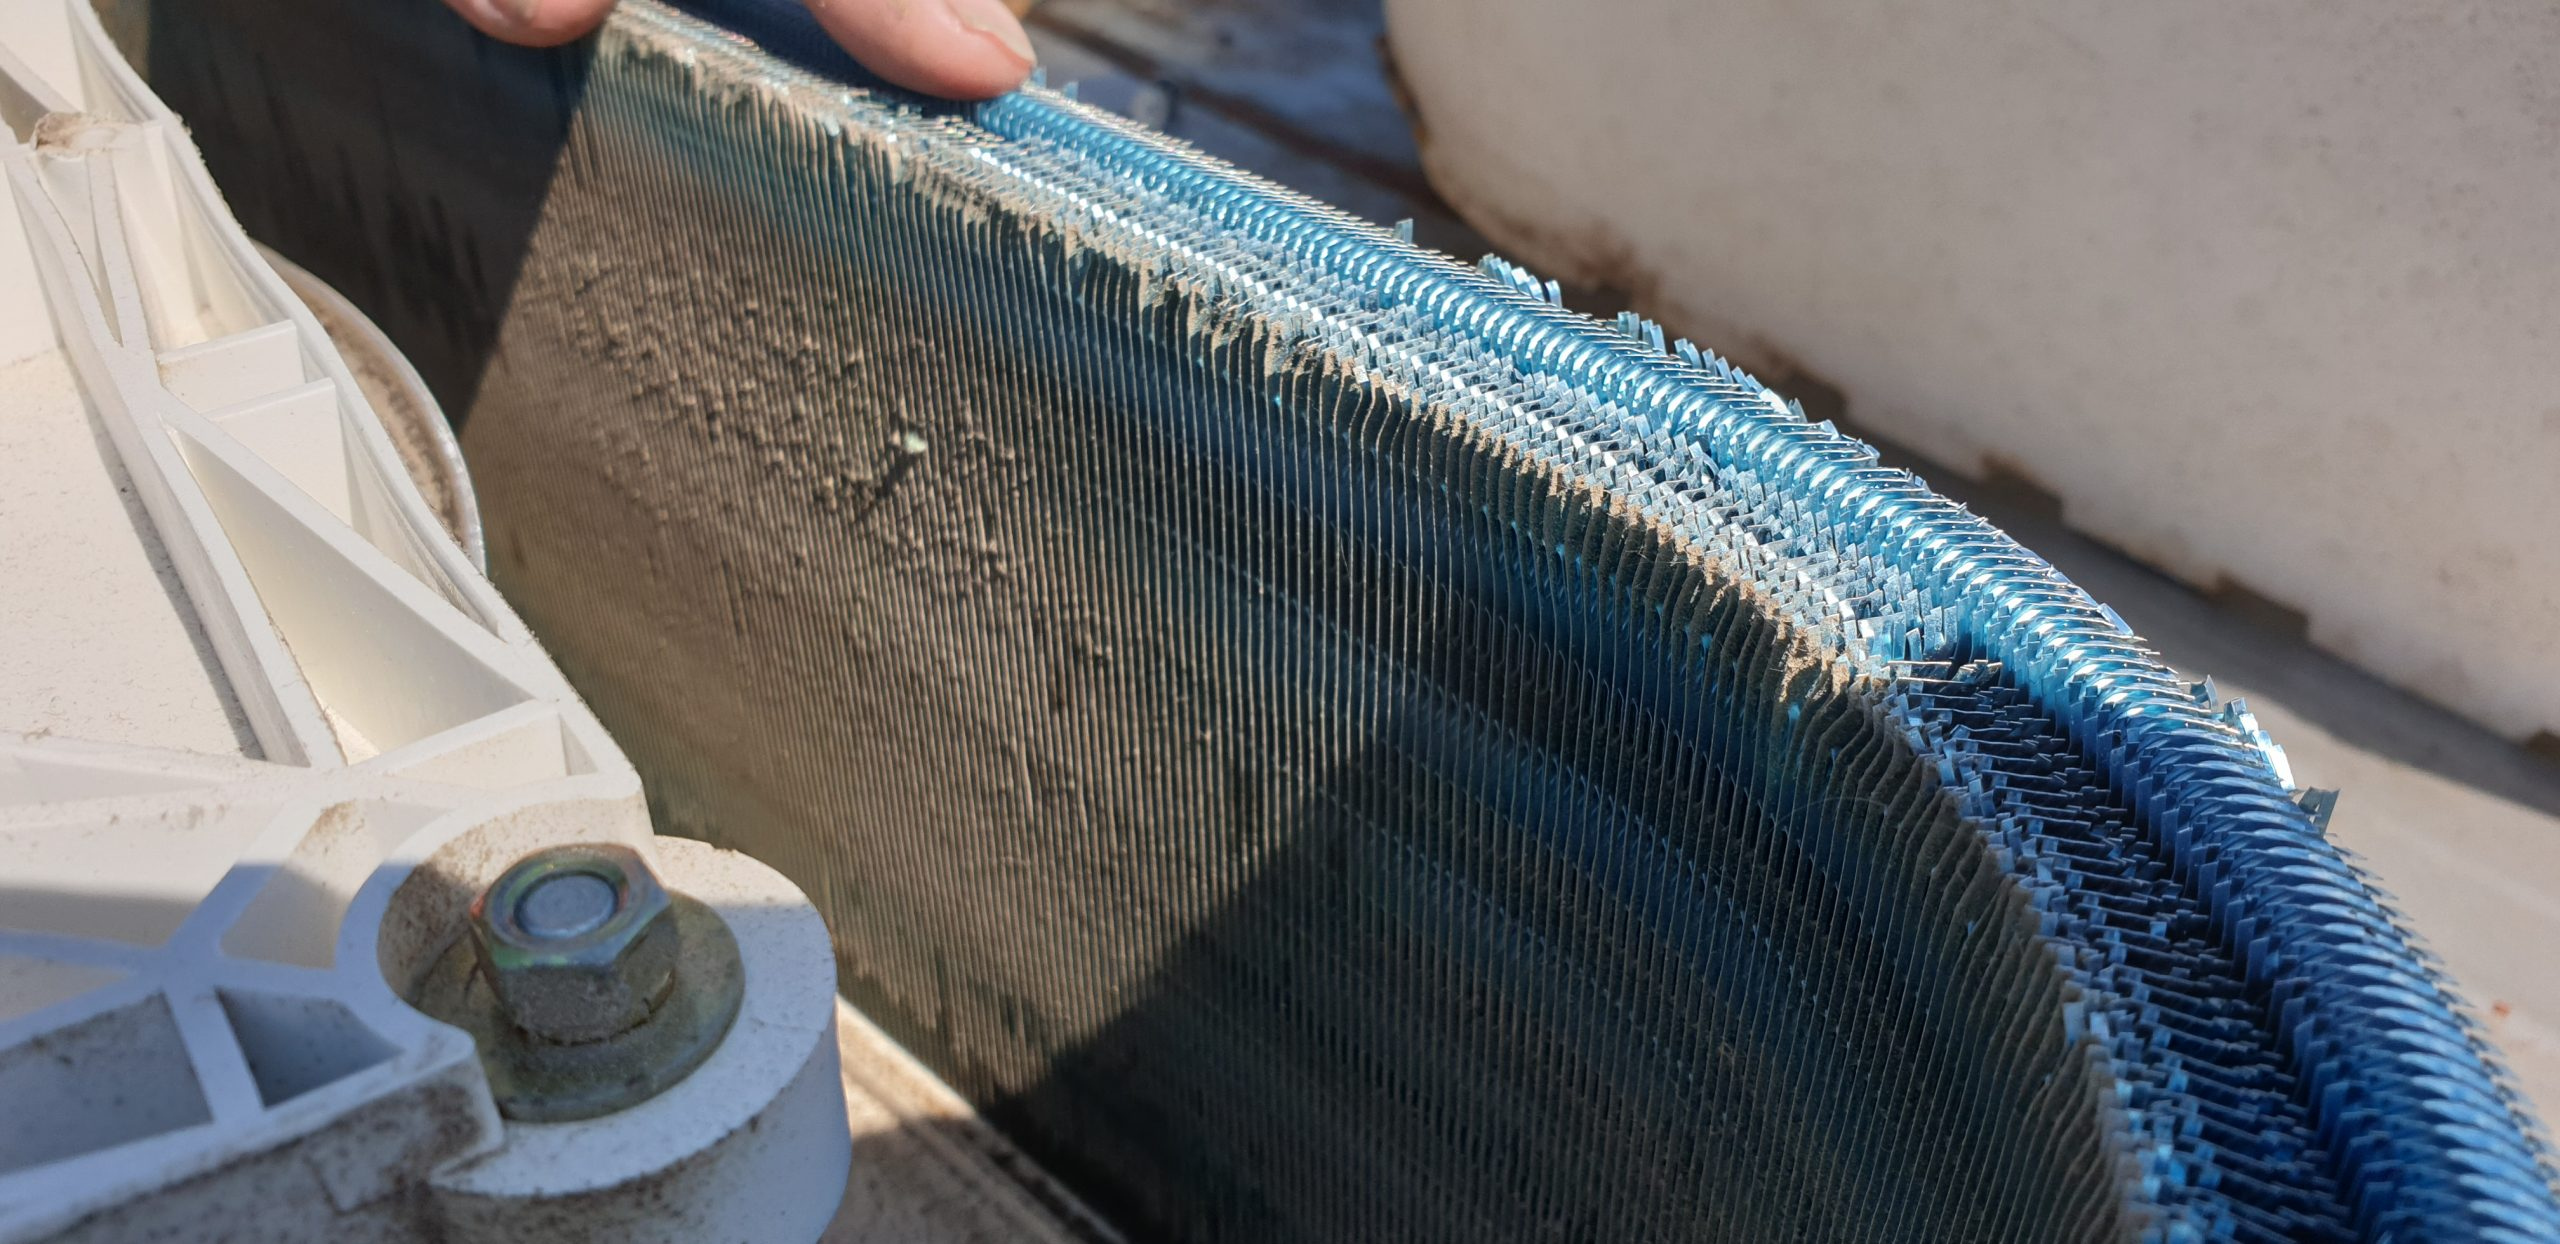 Air conditioner service - dust build up